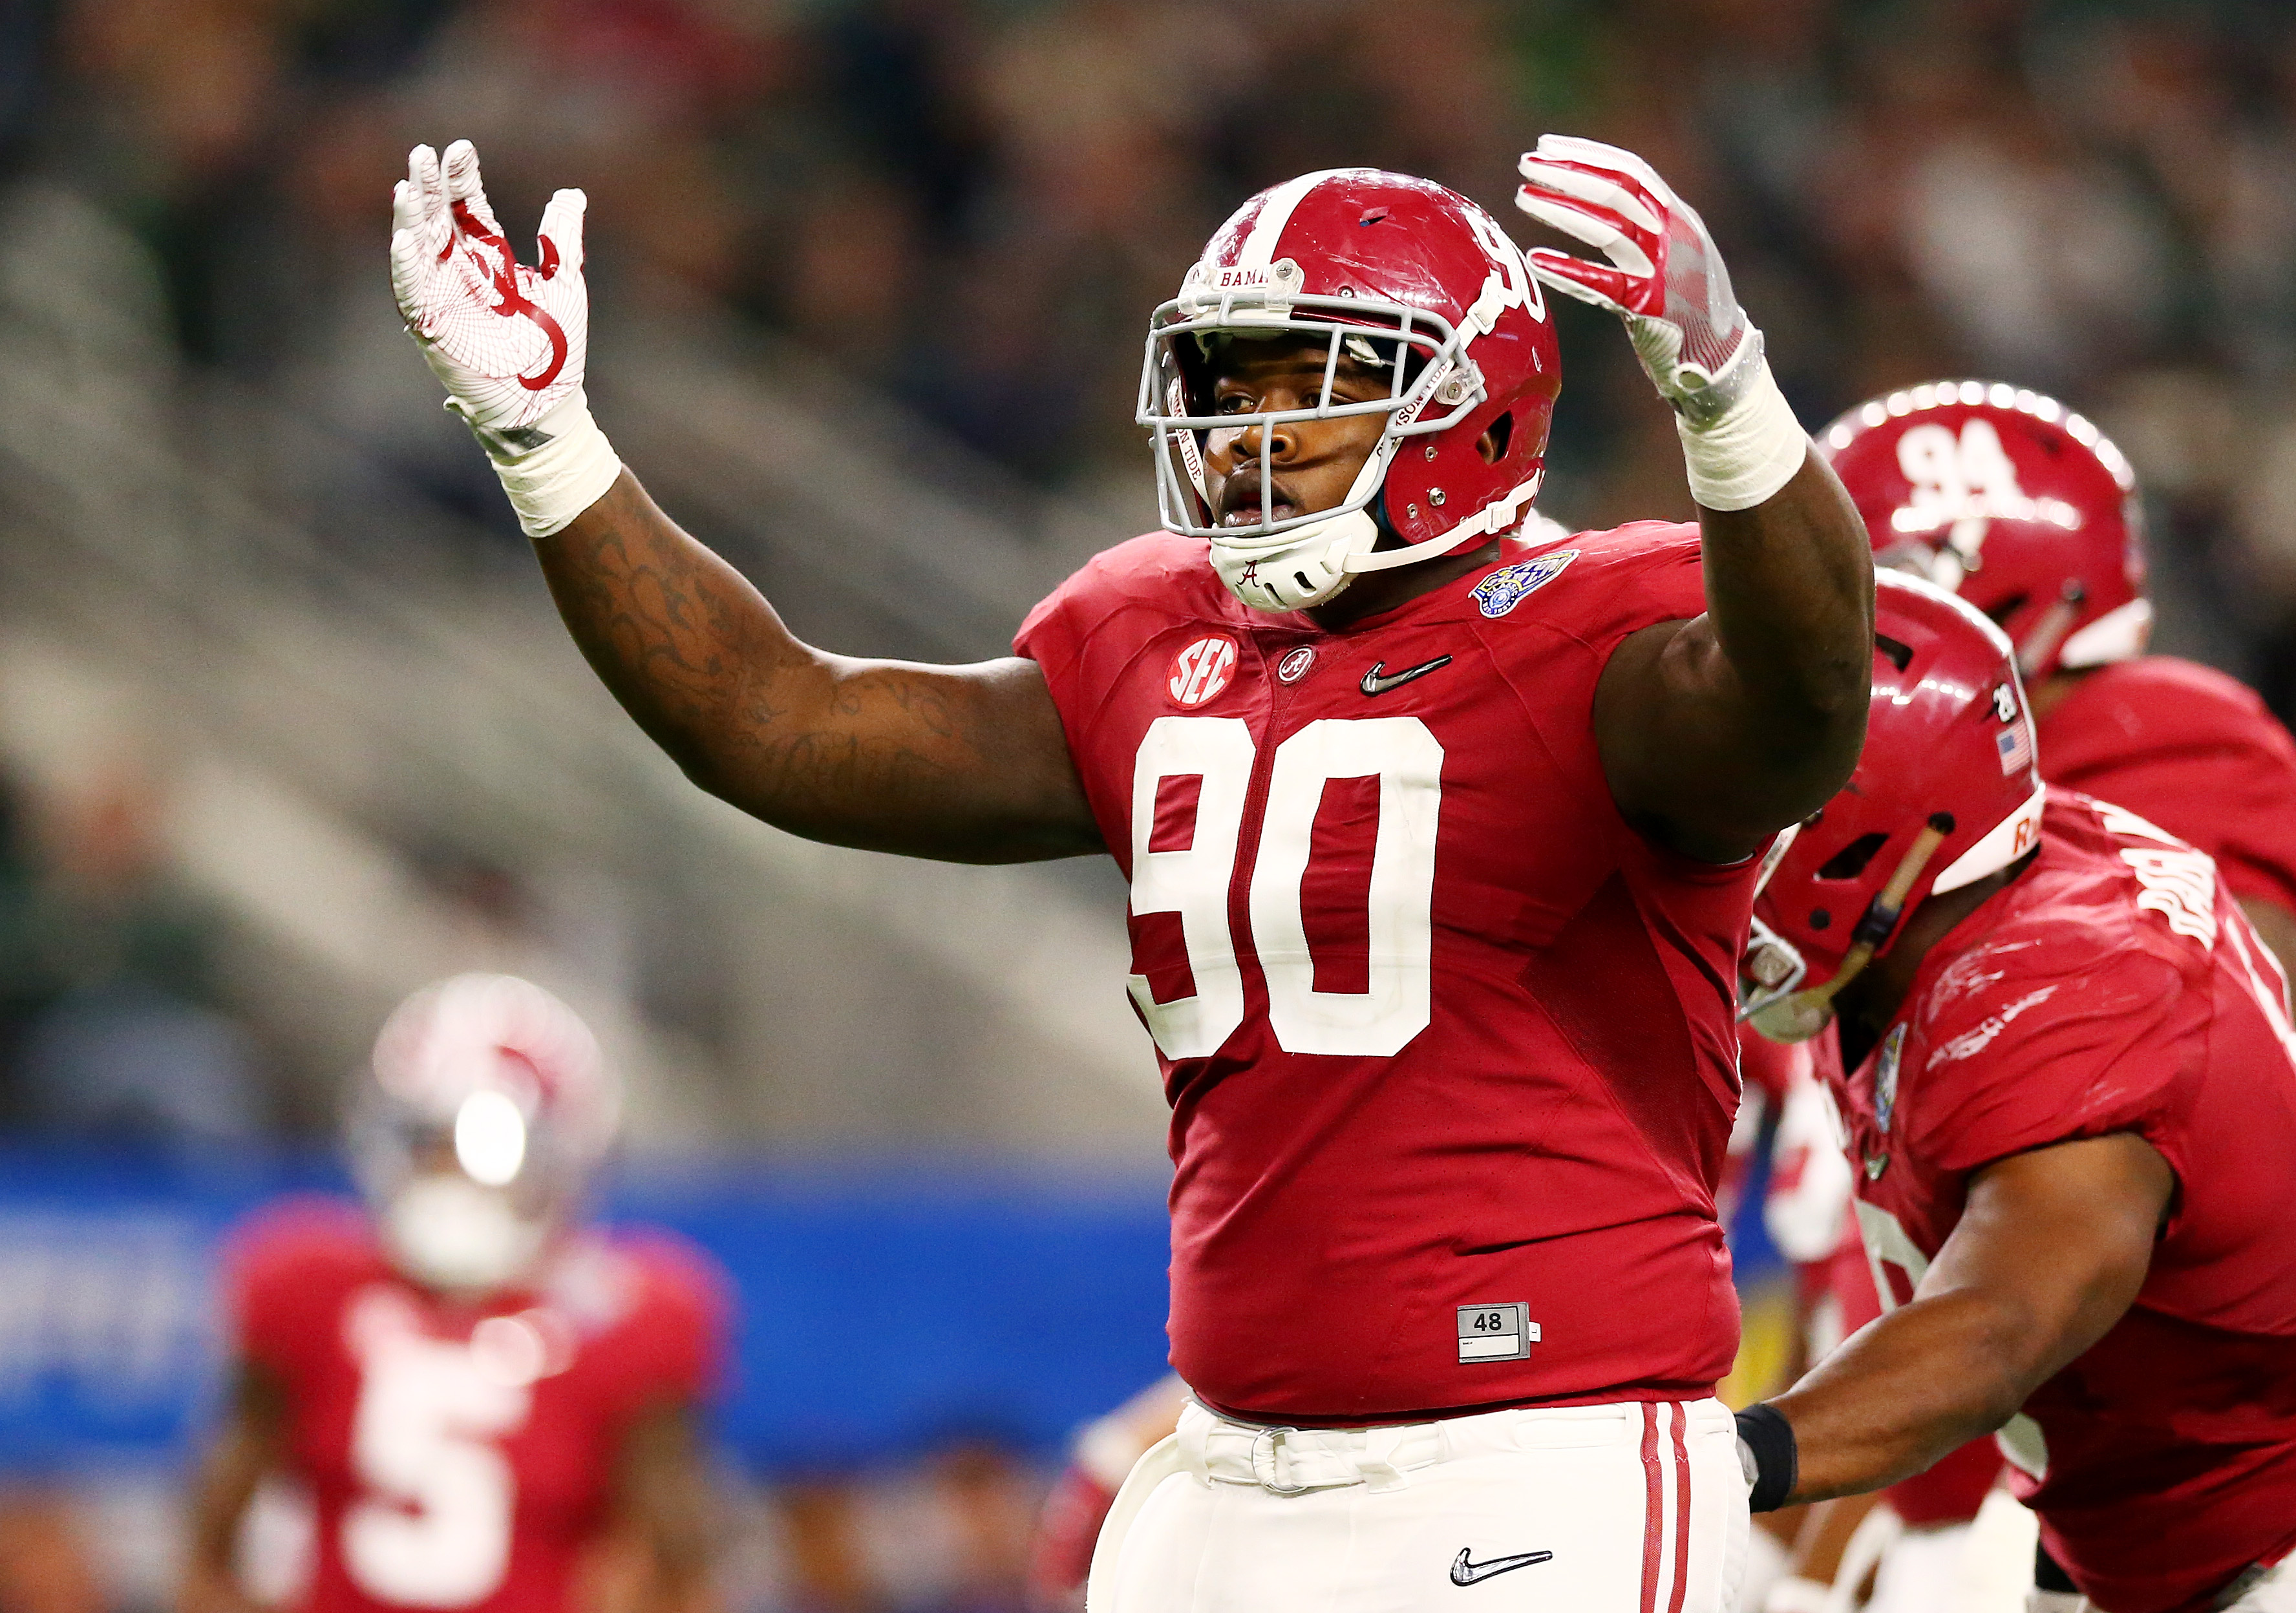 ARLINGTON, TX - DECEMBER 31:  Jarran Reed #90 of the Alabama Crimson Tide reacts in the second half against the Michigan State Spartans during the Goodyear Cotton Bowl at AT&T Stadium on December 31, 2015 in Arlington, Texas.  (Photo by Ronald Martinez/Getty Images)